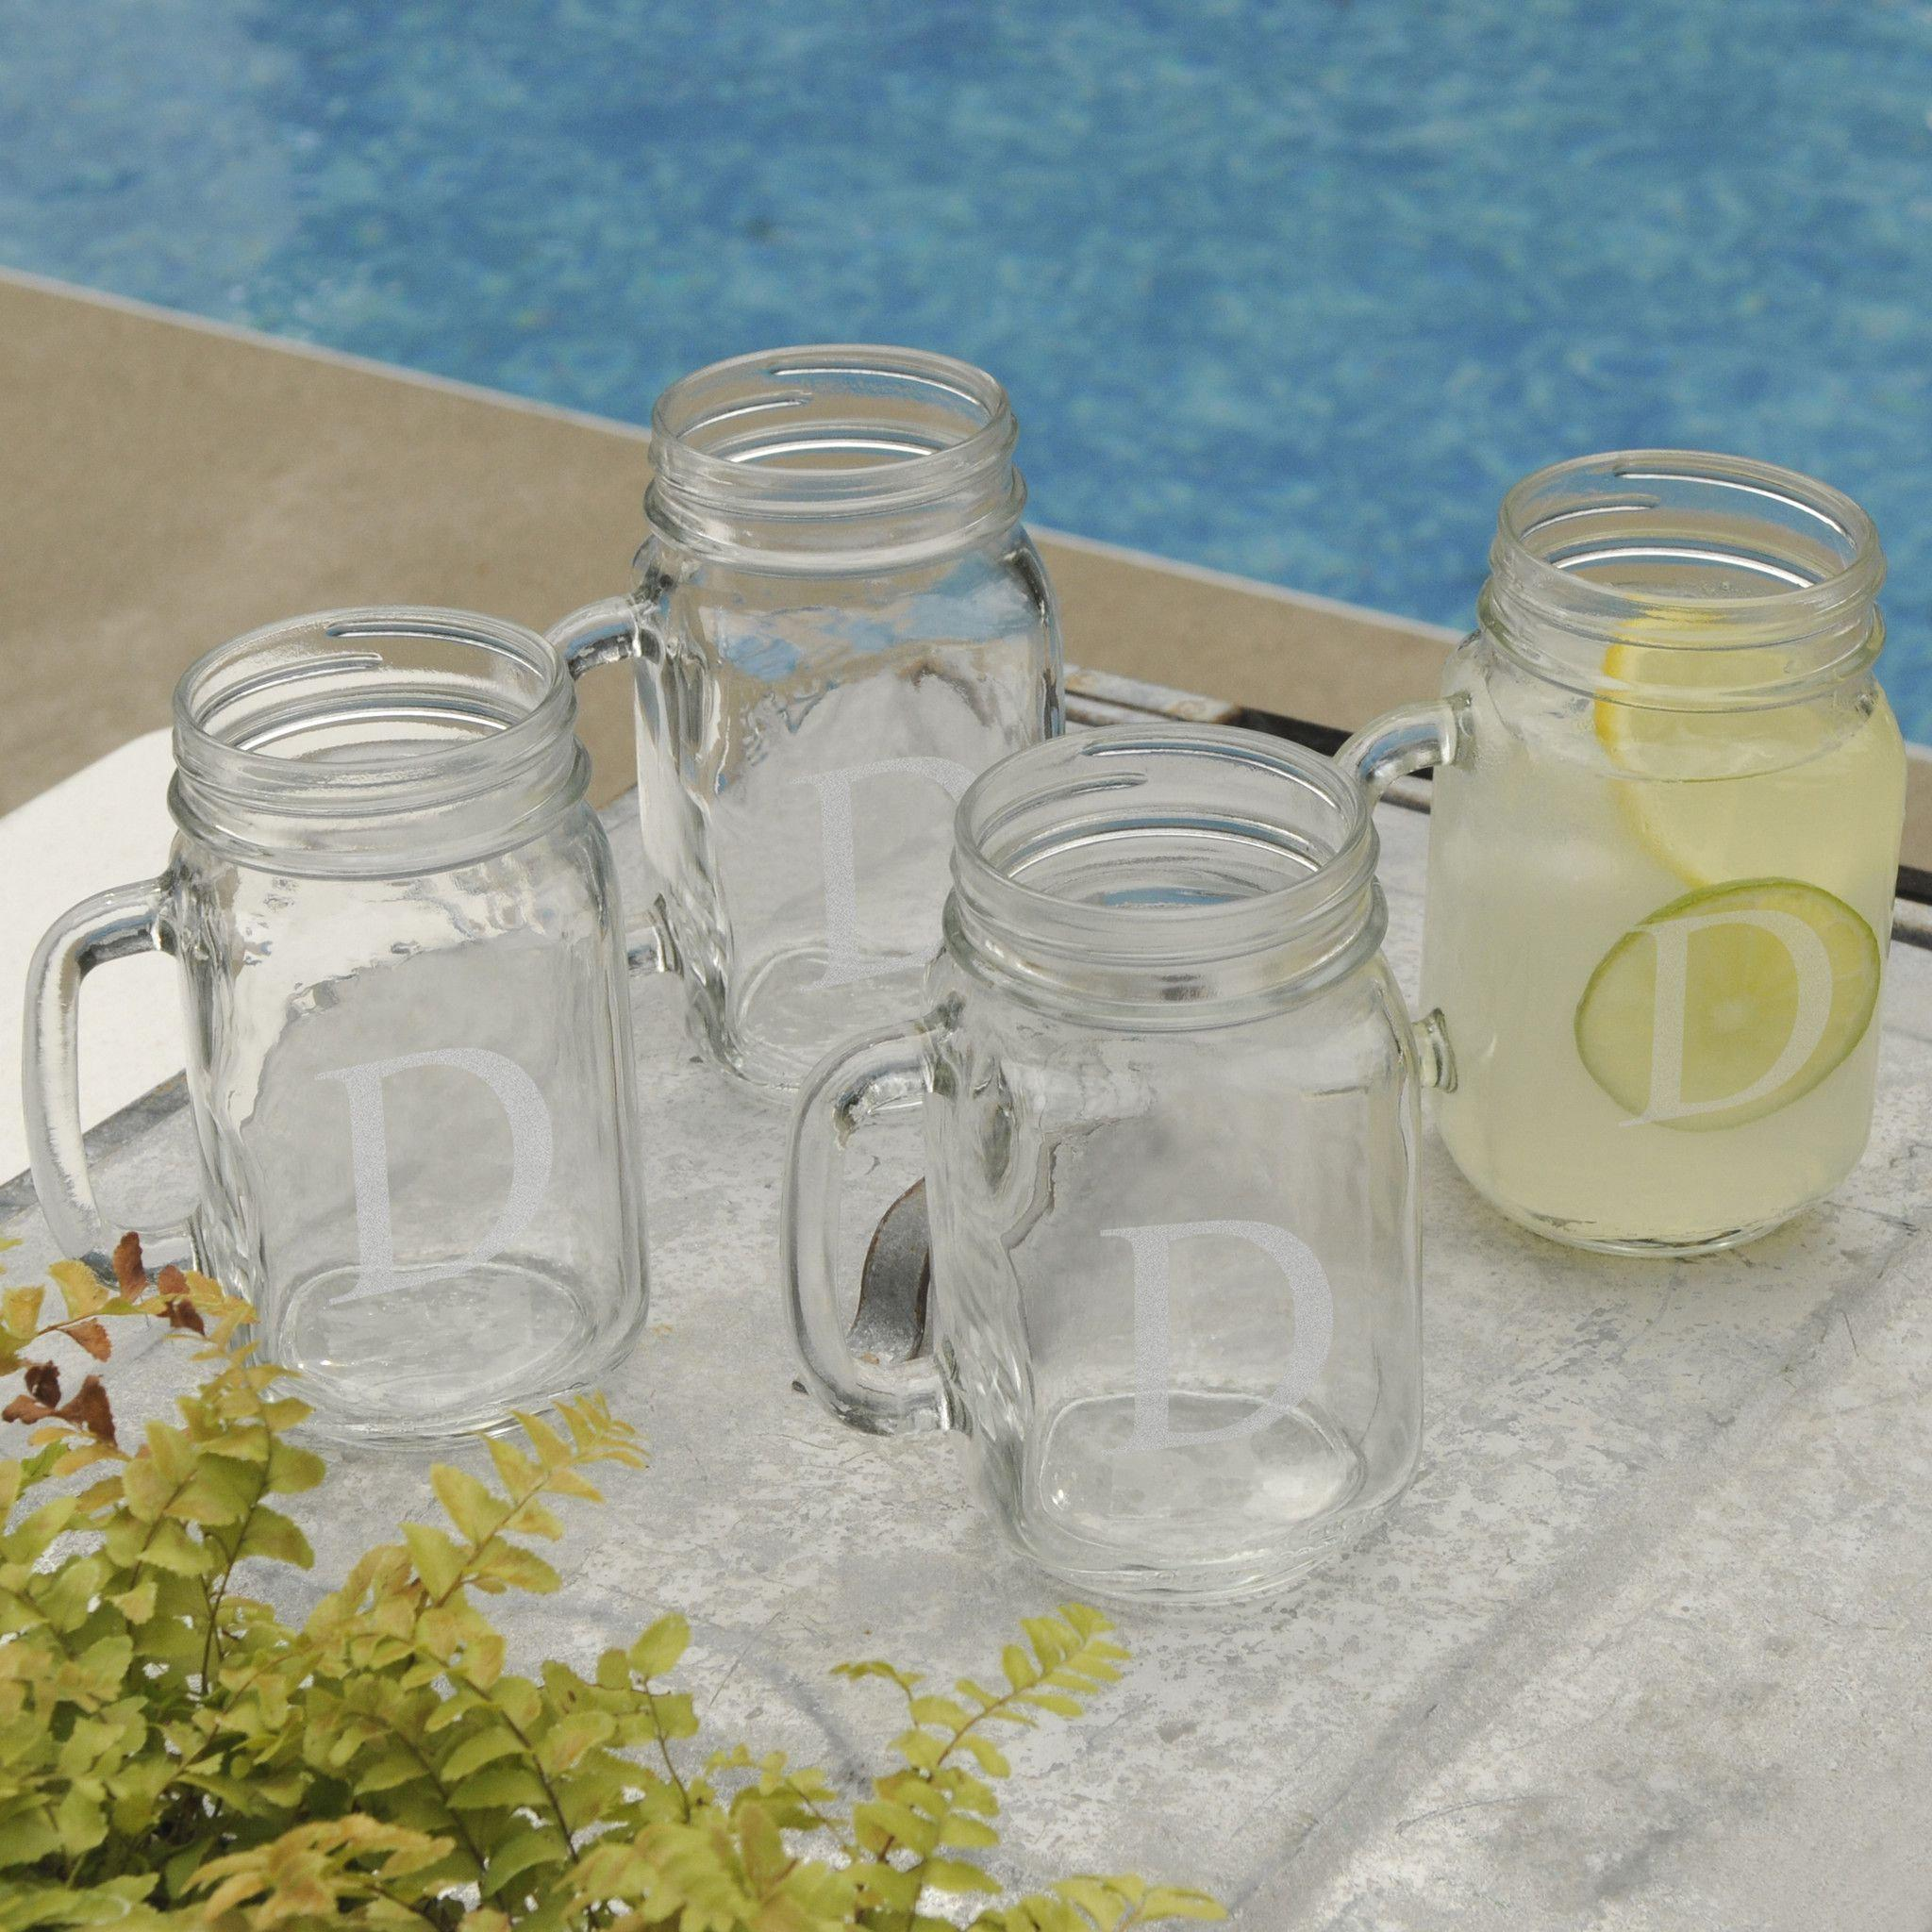 Personalized-Jar-Glass-Set-of-4